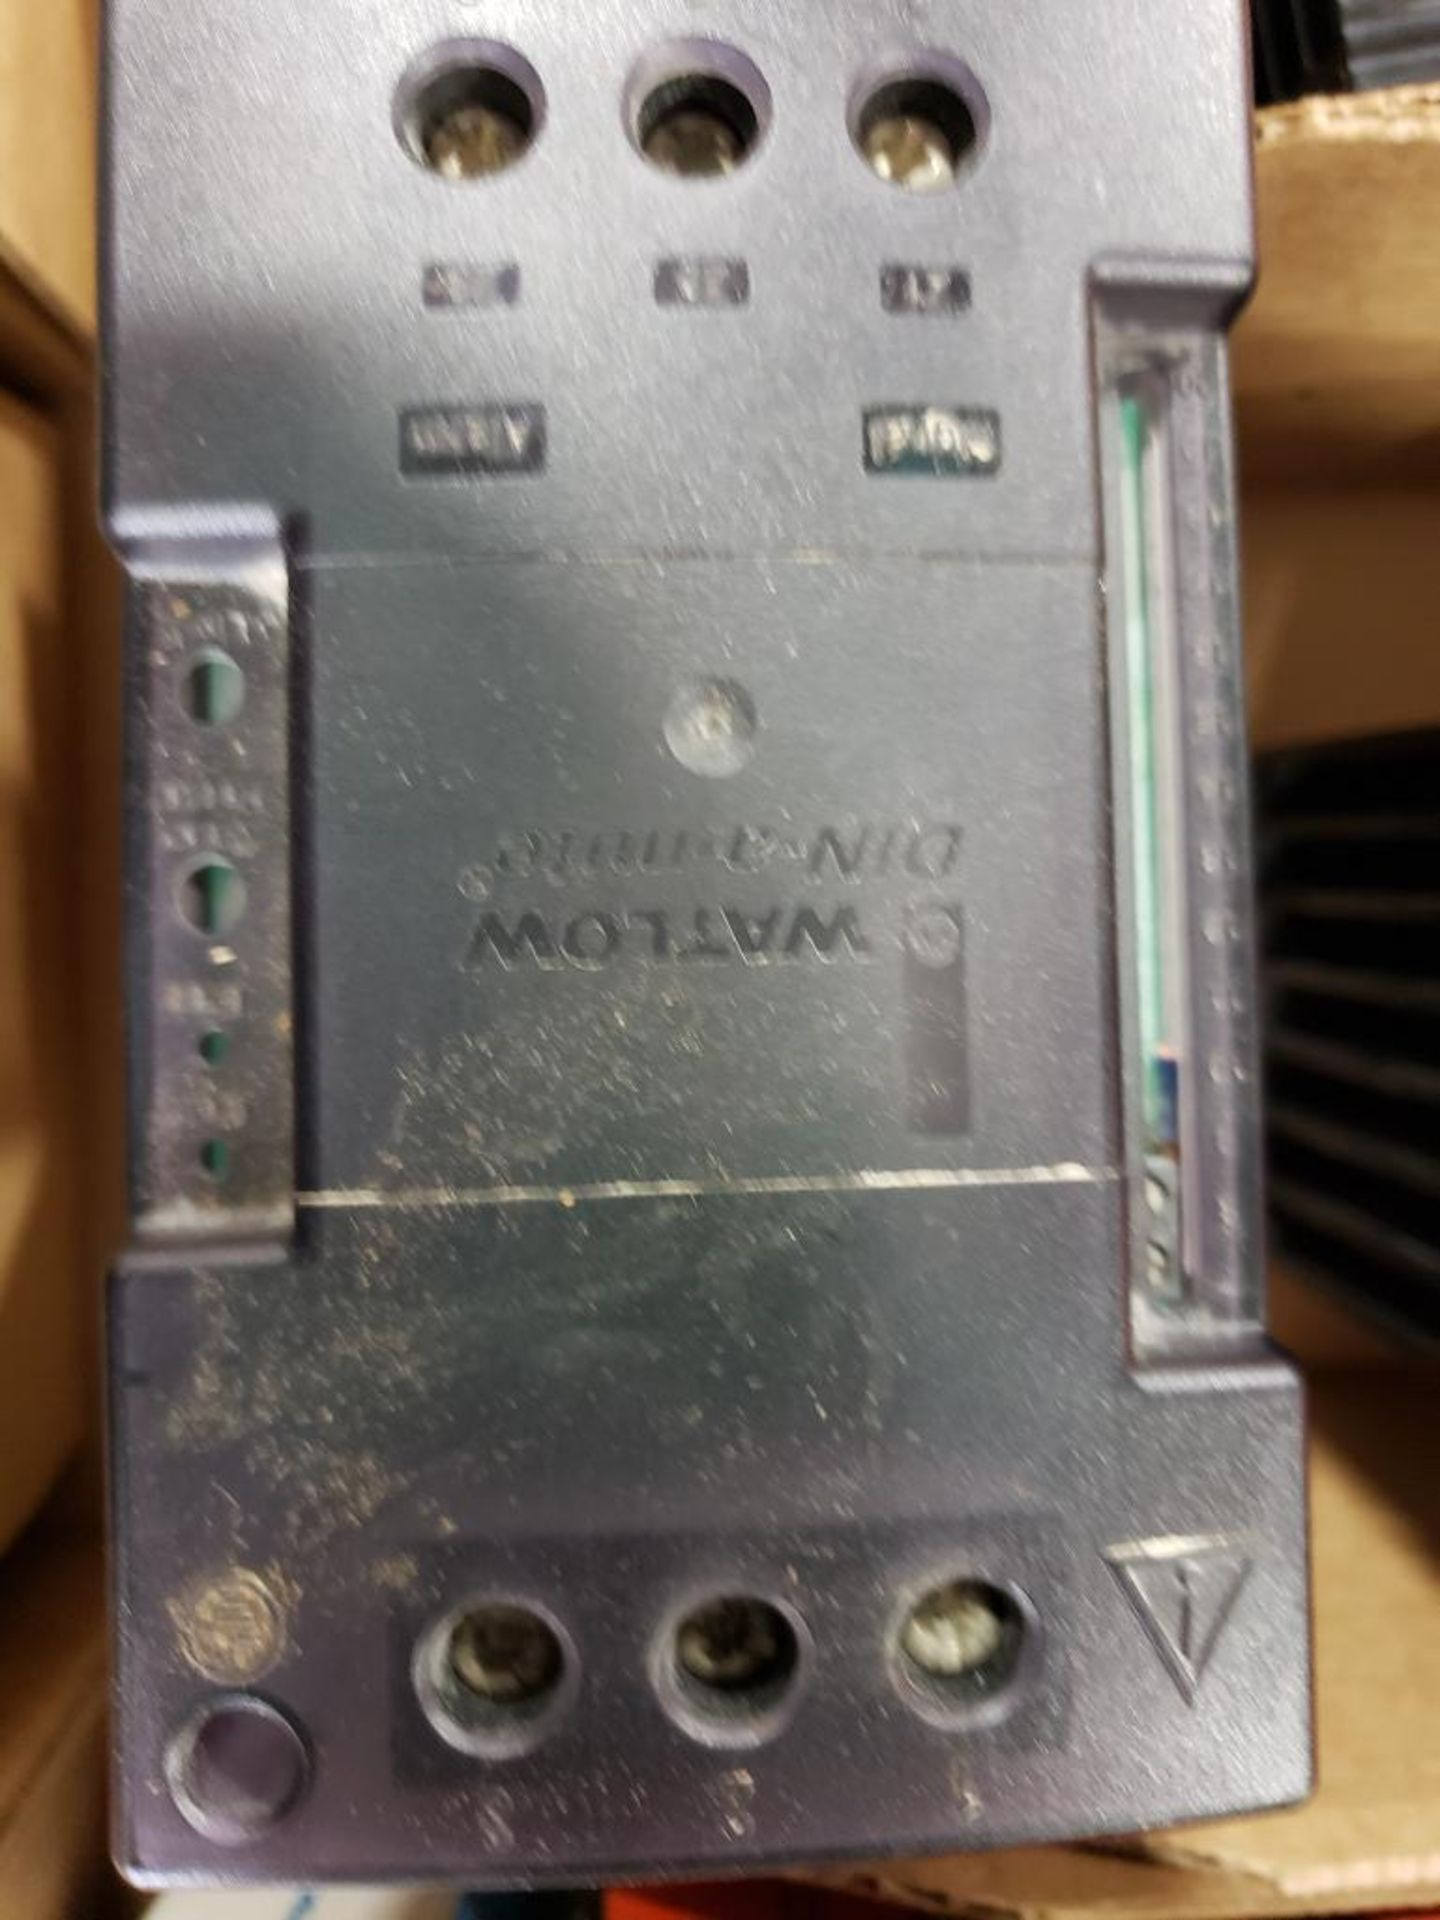 Qty 2 - Watlow DIN-A-Mite DC10-60C0-0000 power controller. - Image 2 of 5